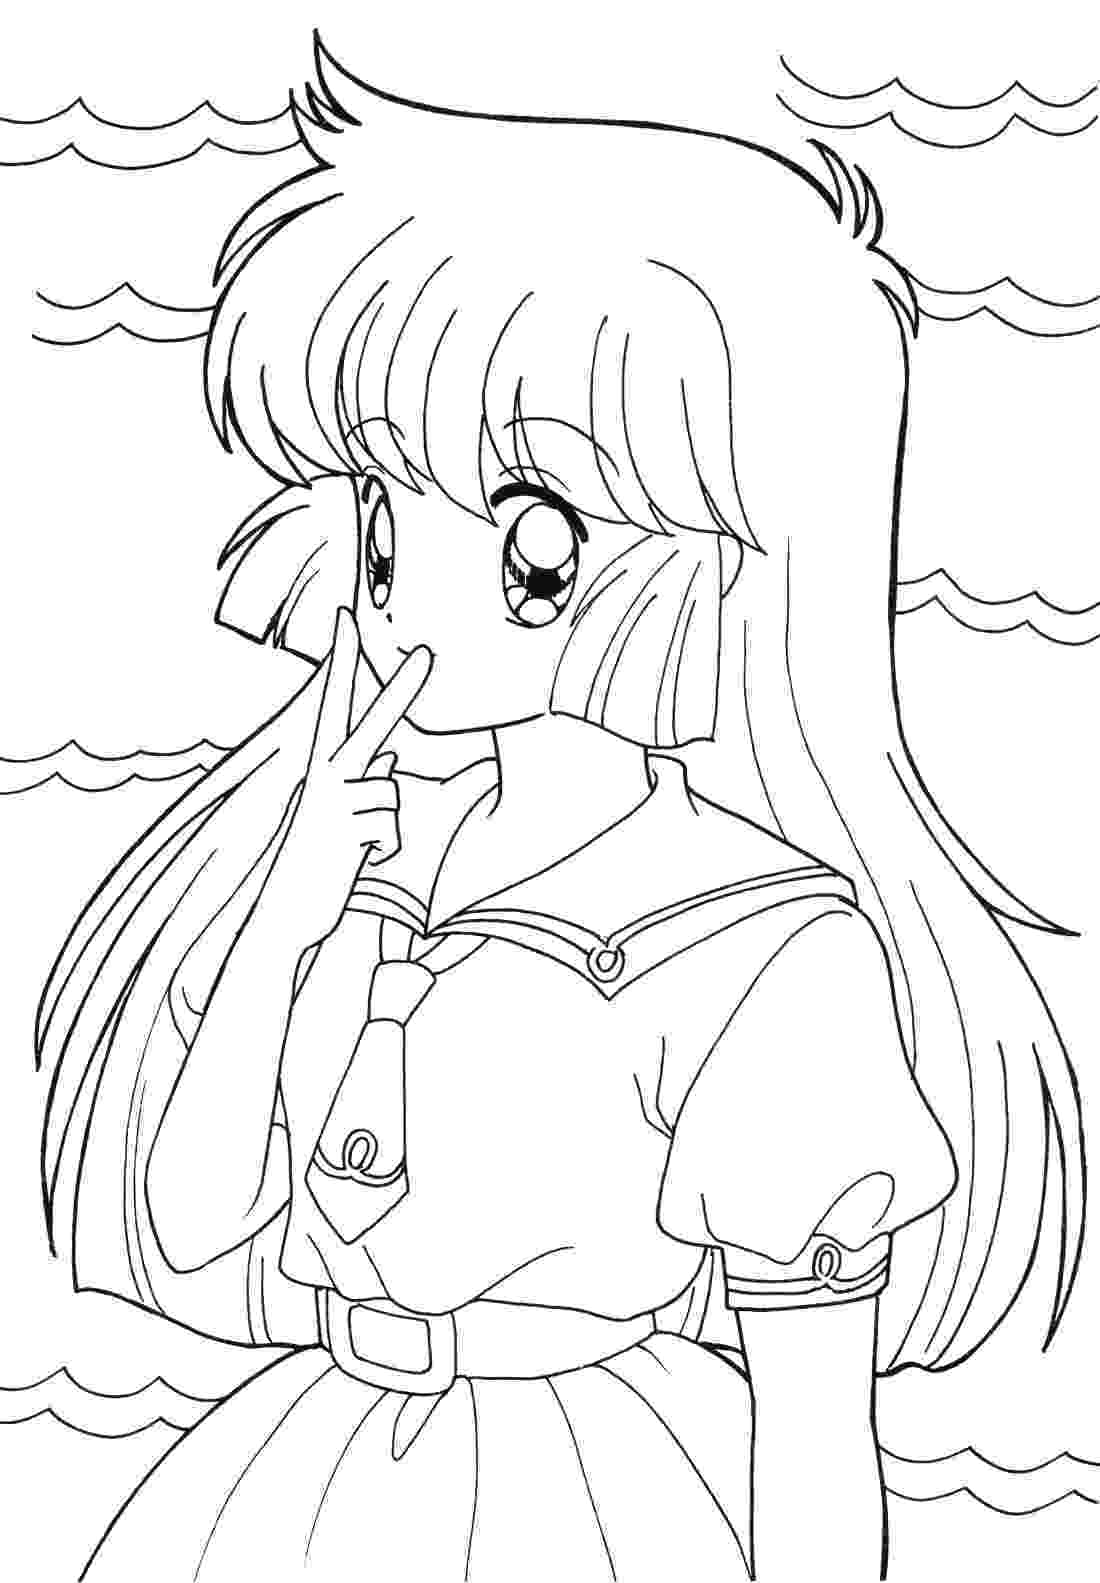 anime couples coloring pages anime coloring pages best coloring pages for kids pages anime coloring couples